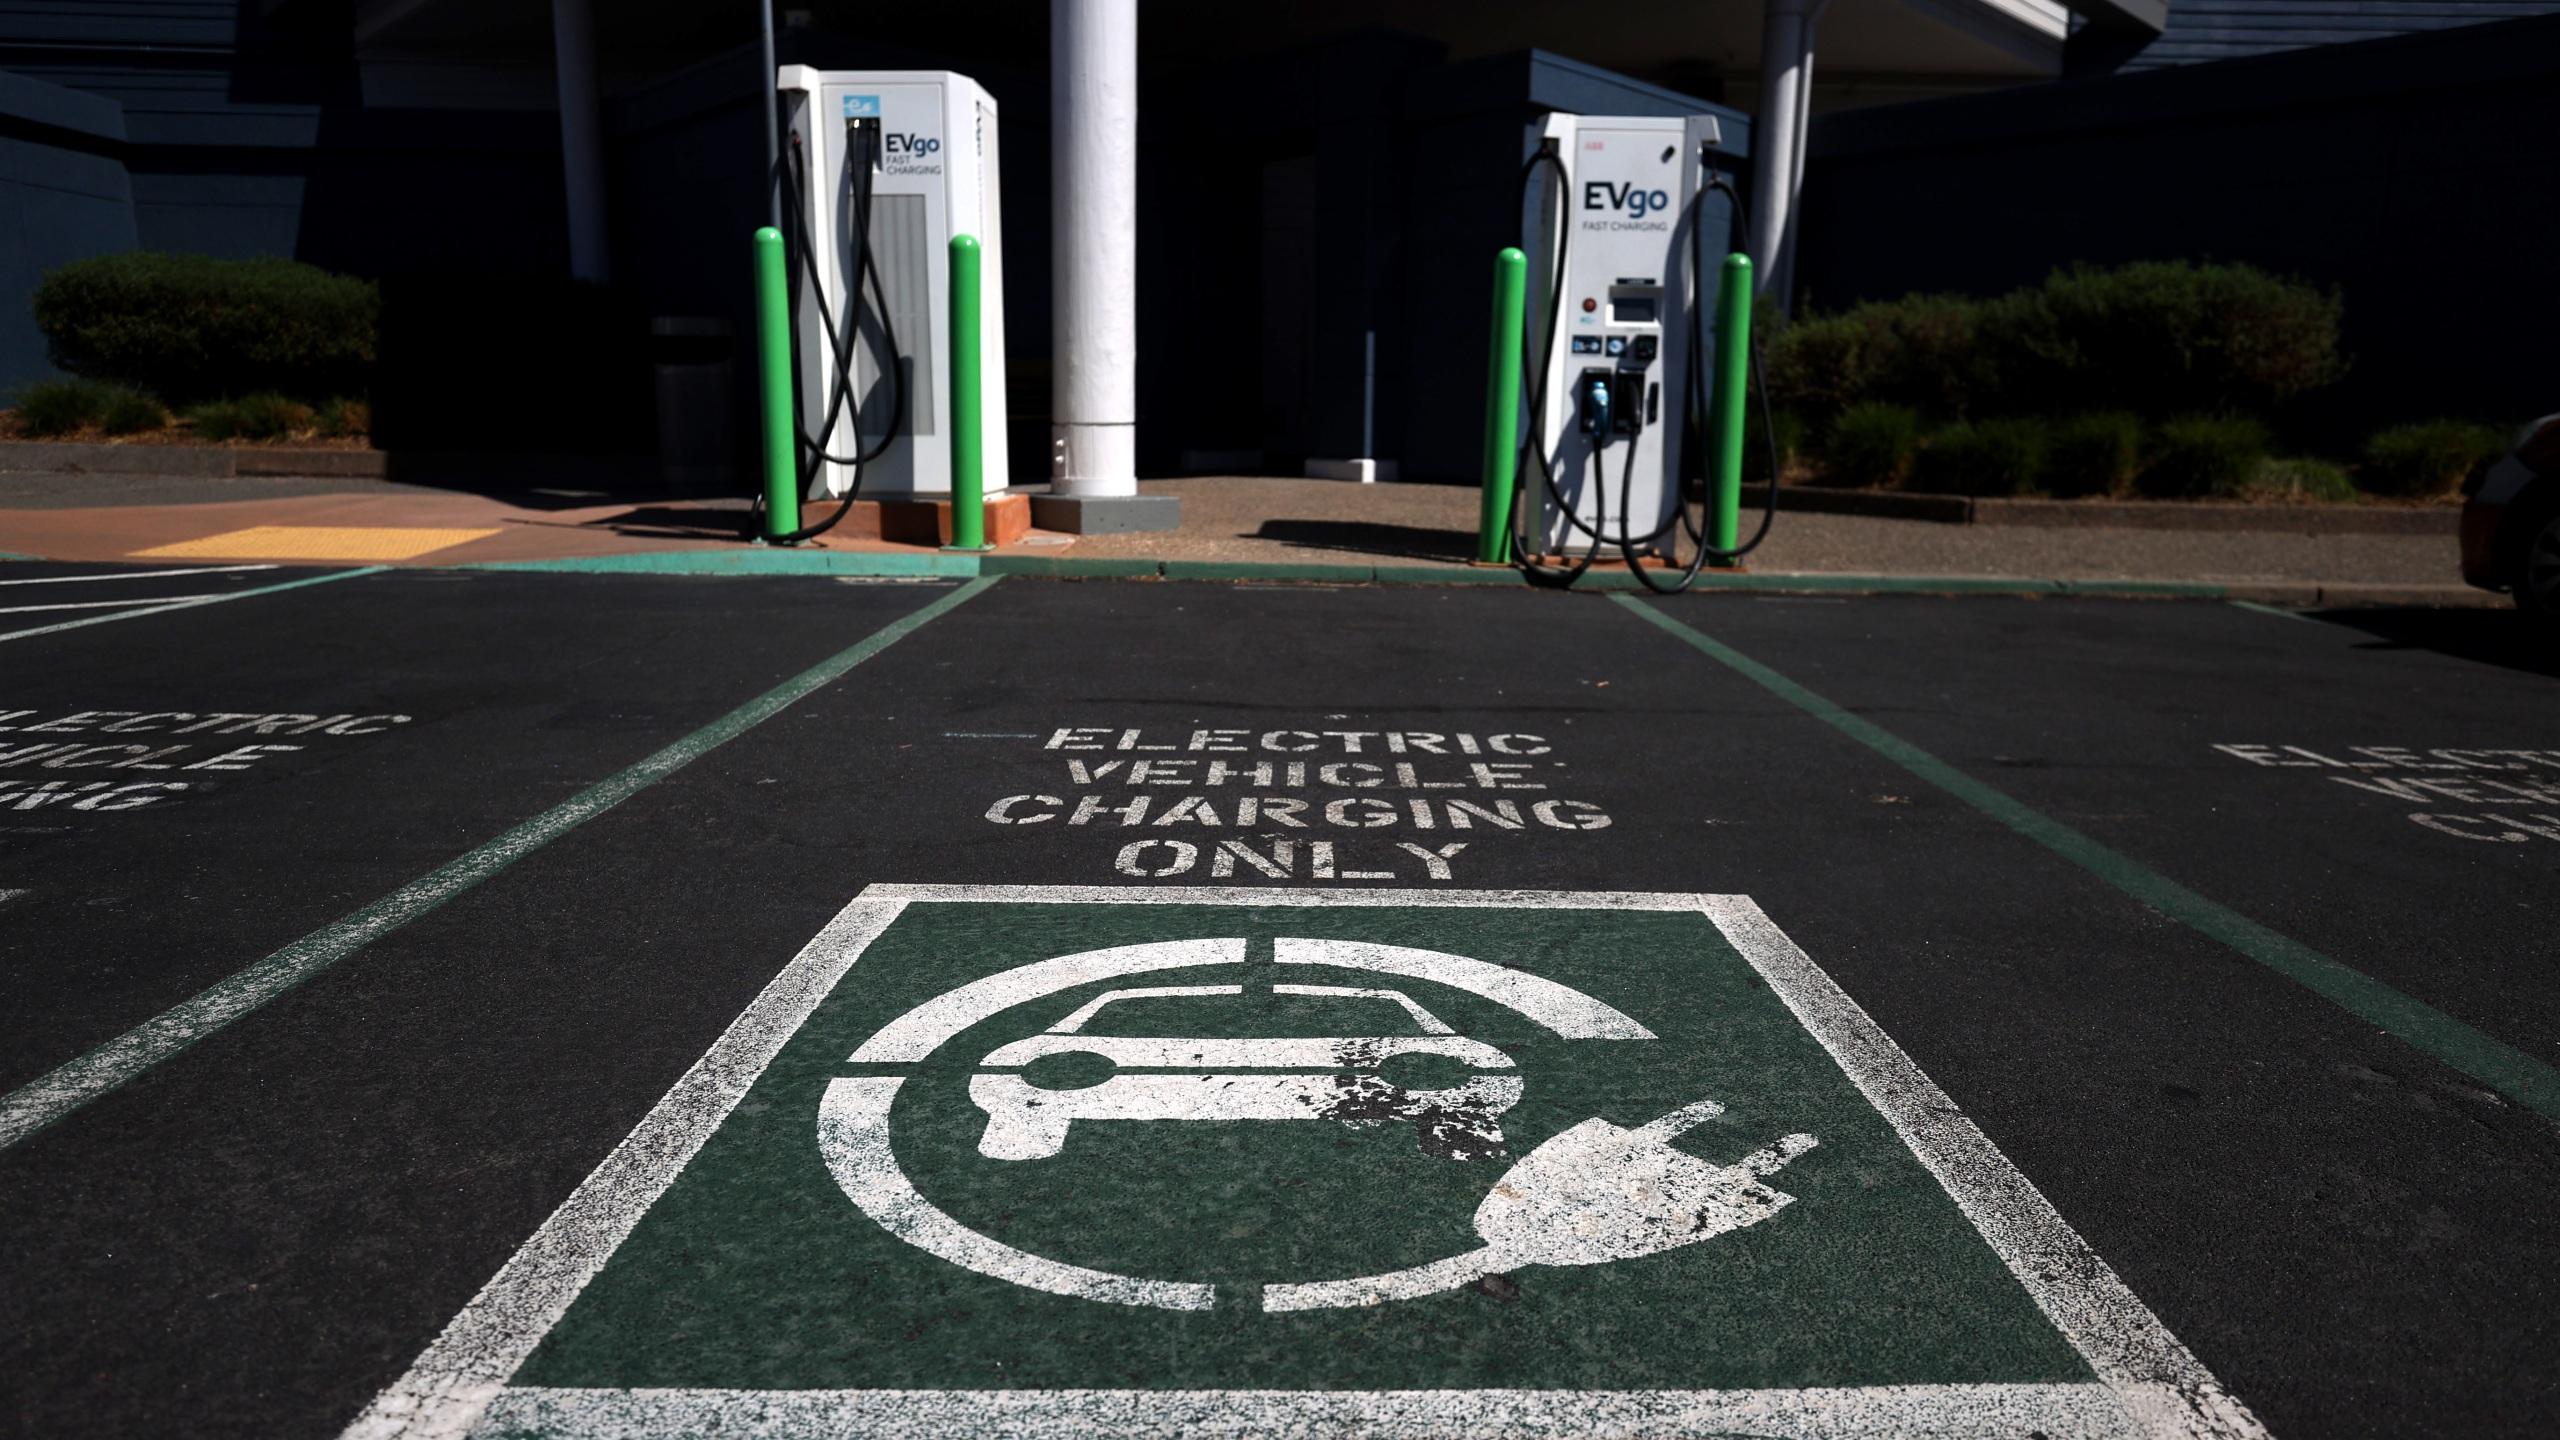 An electric car charges on Sept. 23, 2020, in Corte Madera, California. (Justin Sullivan/Getty Images)